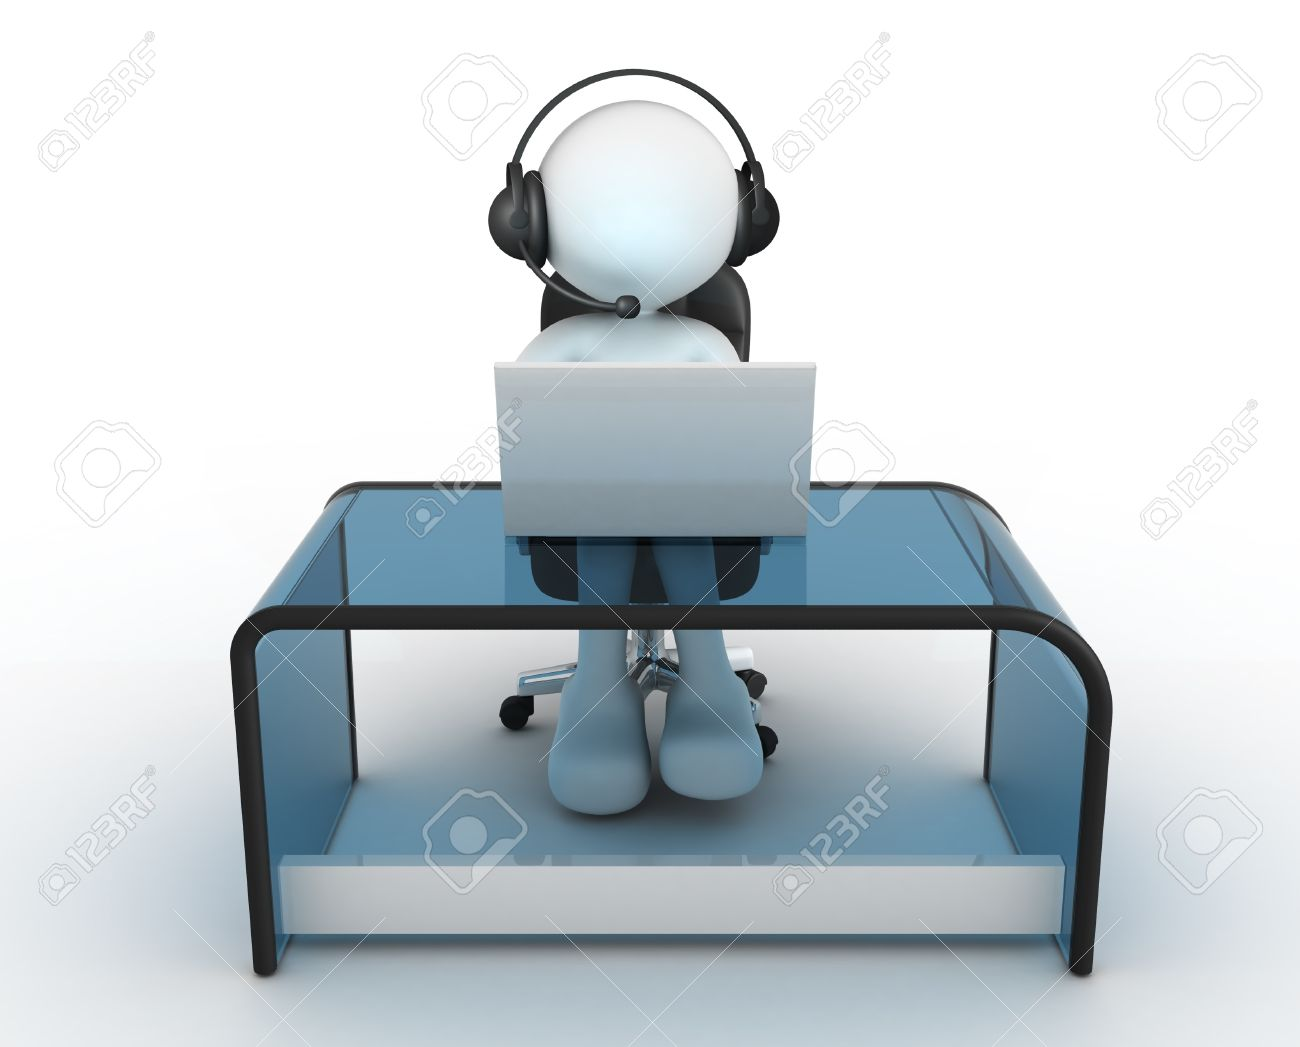 3d people - man, person with headphone sitting at the table and working on a laptop computer. Standard-Bild - 17532615